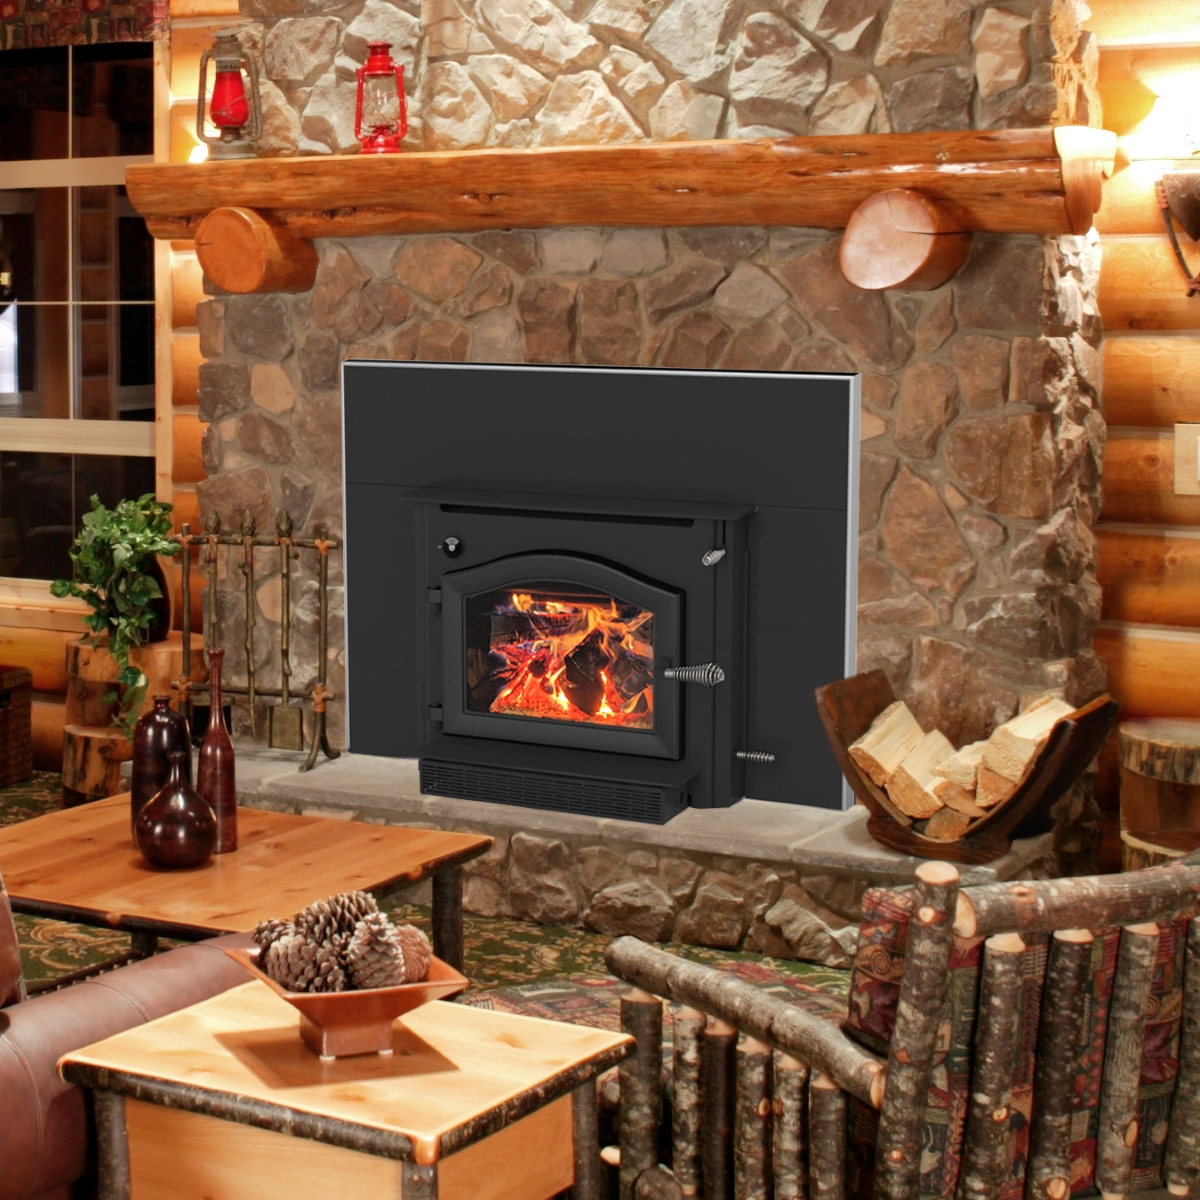 Kuma Aspen wood fireplace insert with pewter door, made in the USA